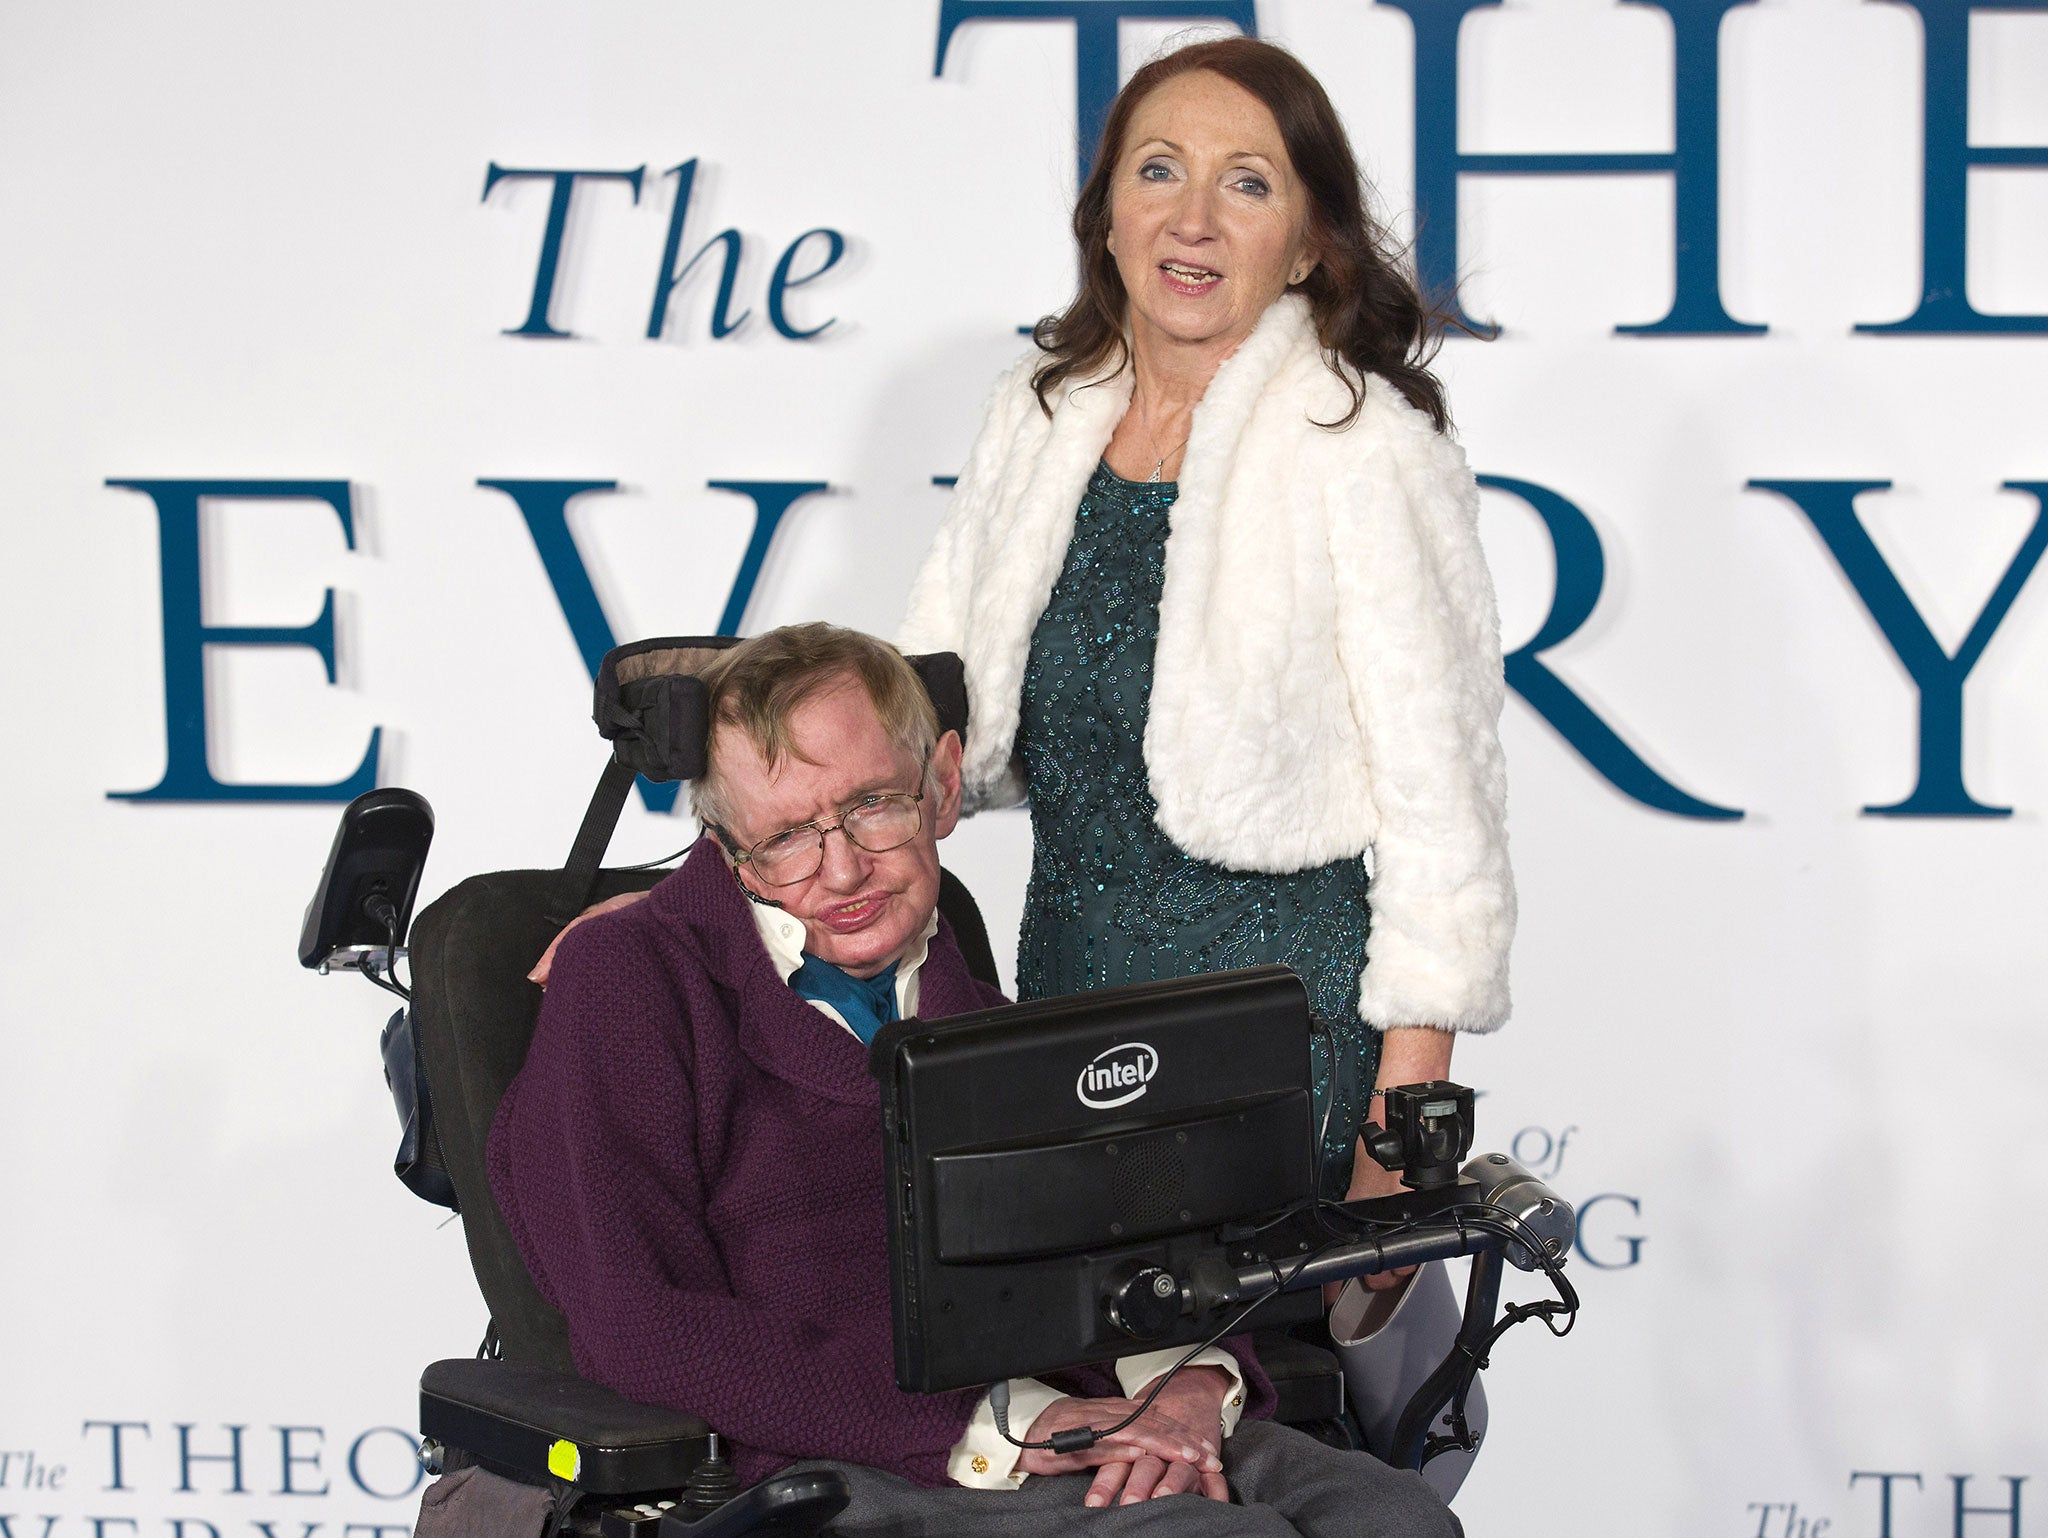 Jane Wilde and stephen hawking marriage